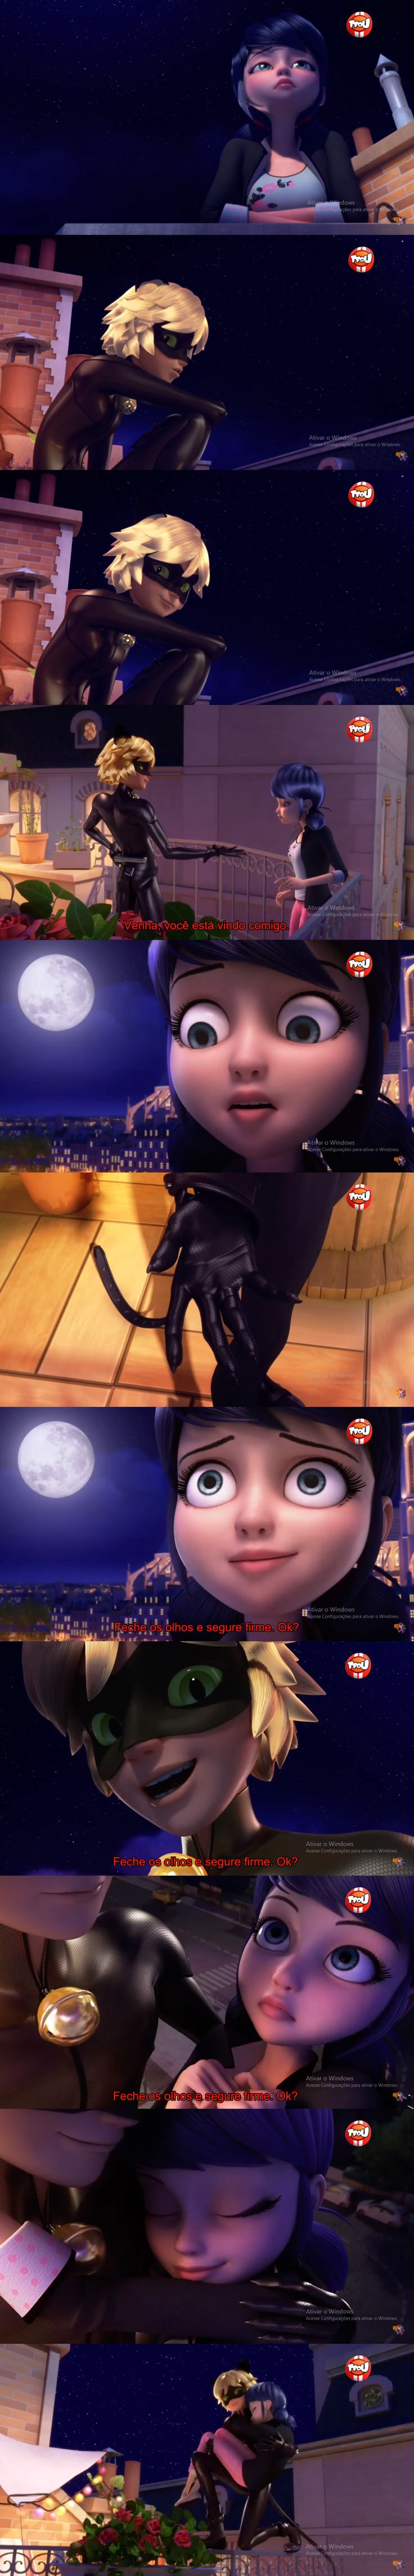 Marinette and Chat Noir - MariChat moments S2 by S02E09 - Glaciator